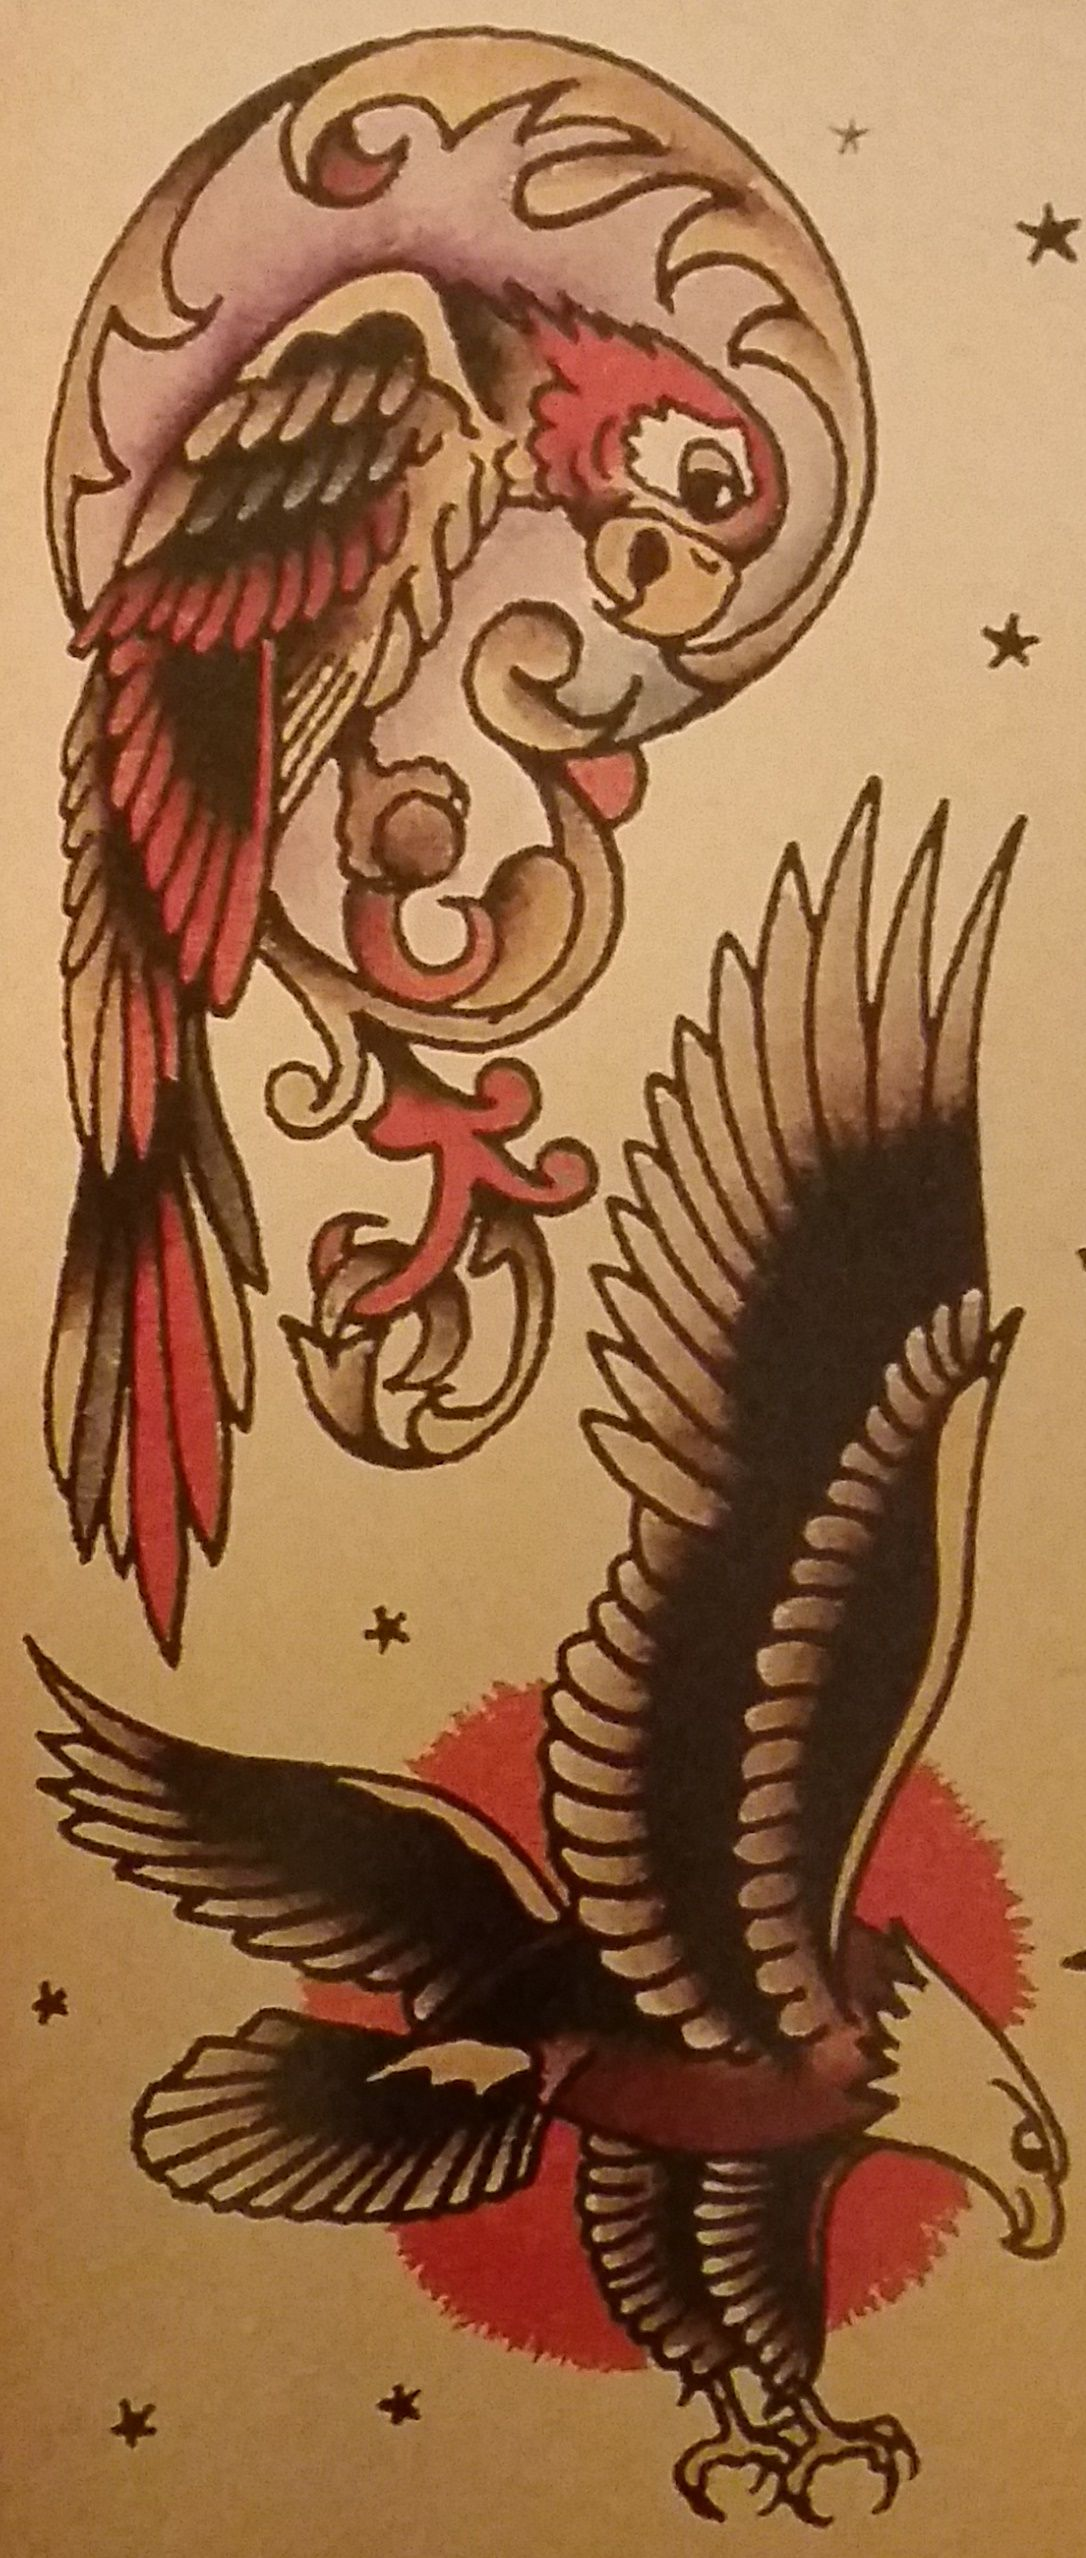 American eagle tattoos high quality photos and flash - Traditional Old School Tattoo Sailor Jerry Parrot Eagle Bird